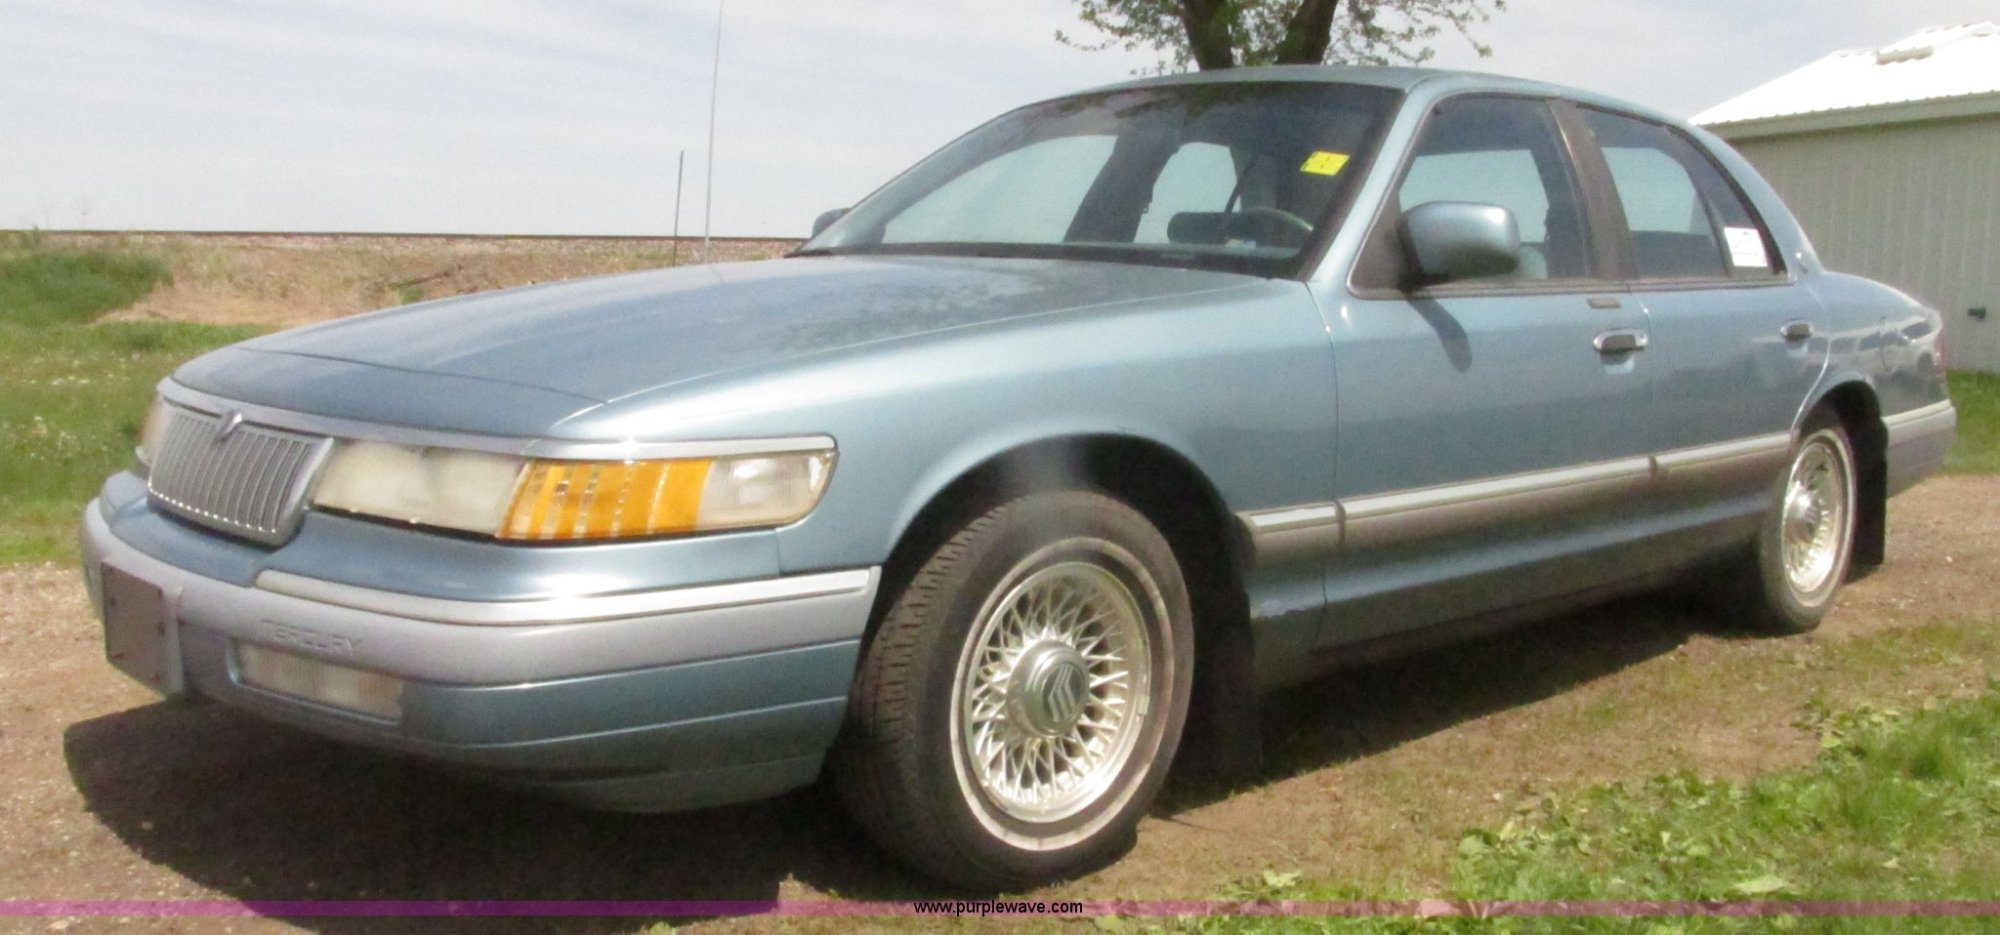 hight resolution of h4635 image for item h4635 1994 mercury grand marquis ls